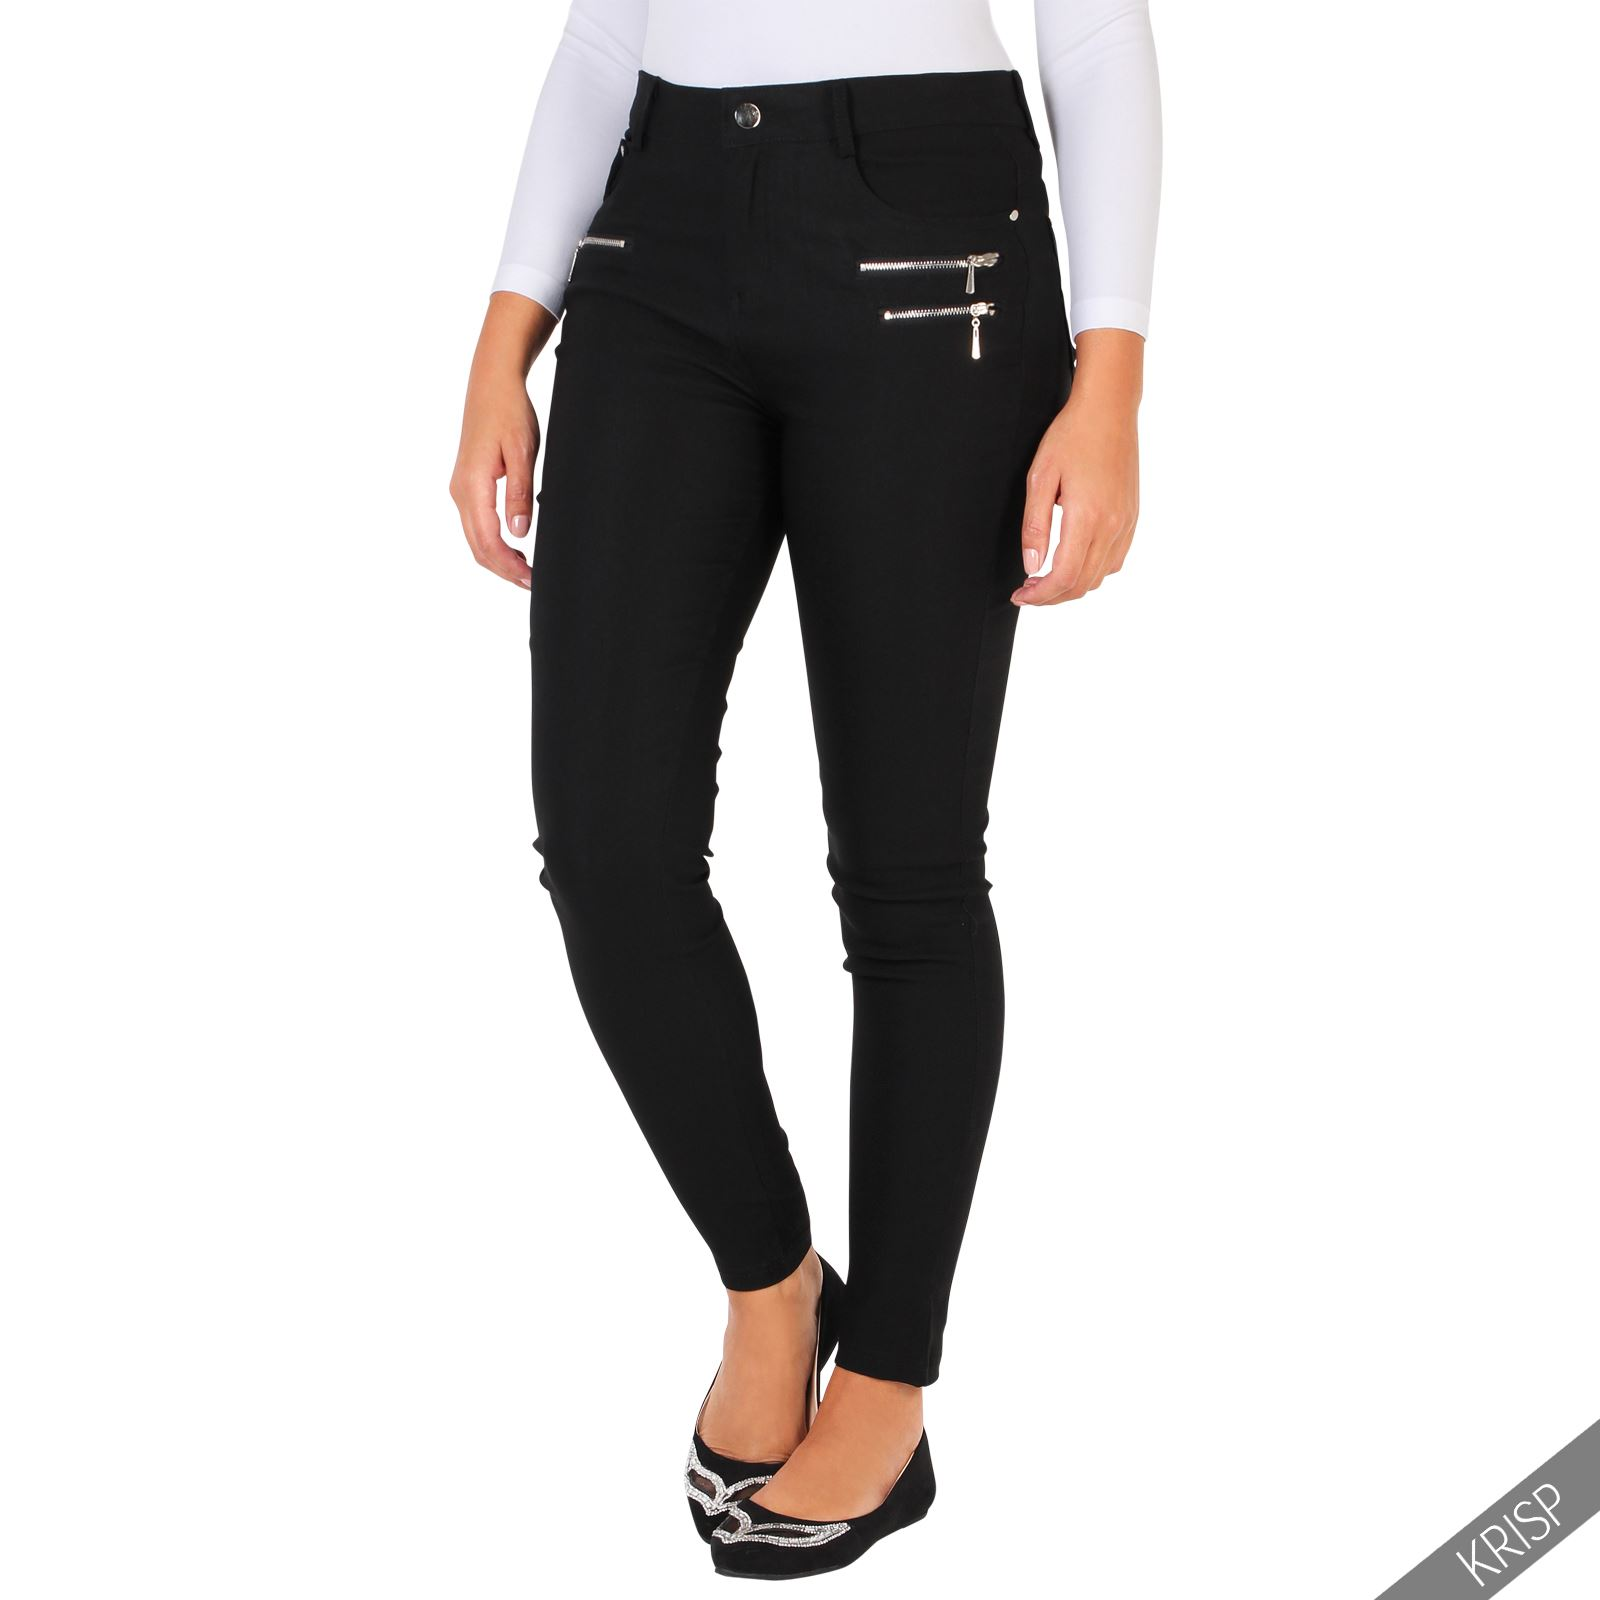 New York & Company slim leg pants feature a slim, straight leg shape and are available in two different fits; Signature, which has a universal fit and is relaxed through the hip & thigh, and Modern, which has a leaner fit and runs straight through the hip & thigh.